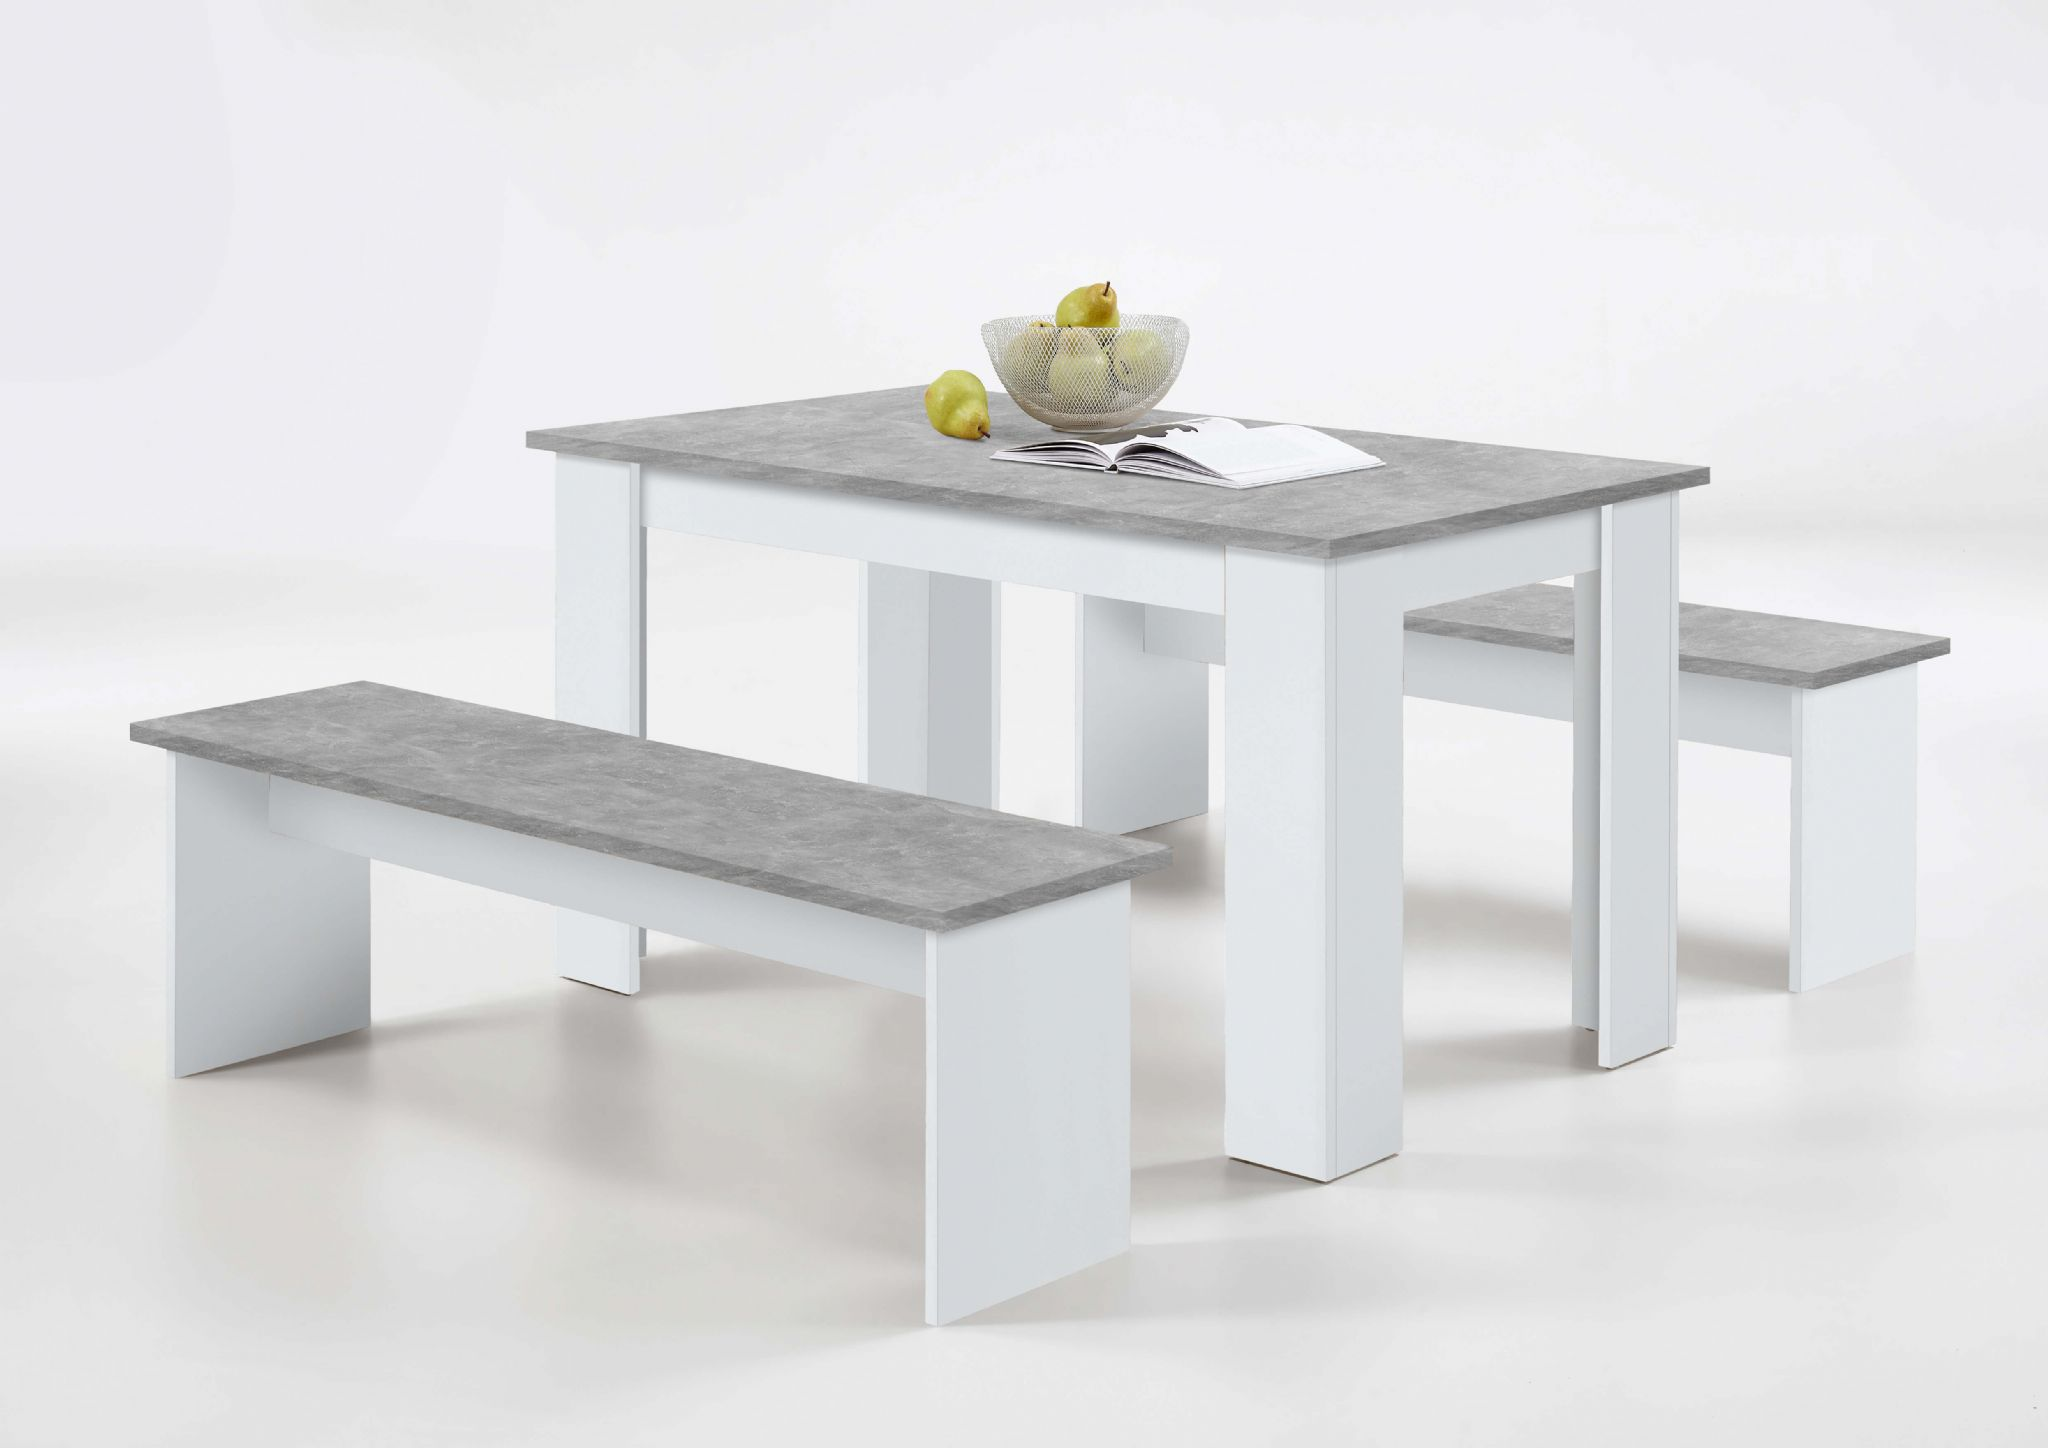 Durban White and Grey Dining Table With Bench Seats SALE at ... 09e114f7d6e2